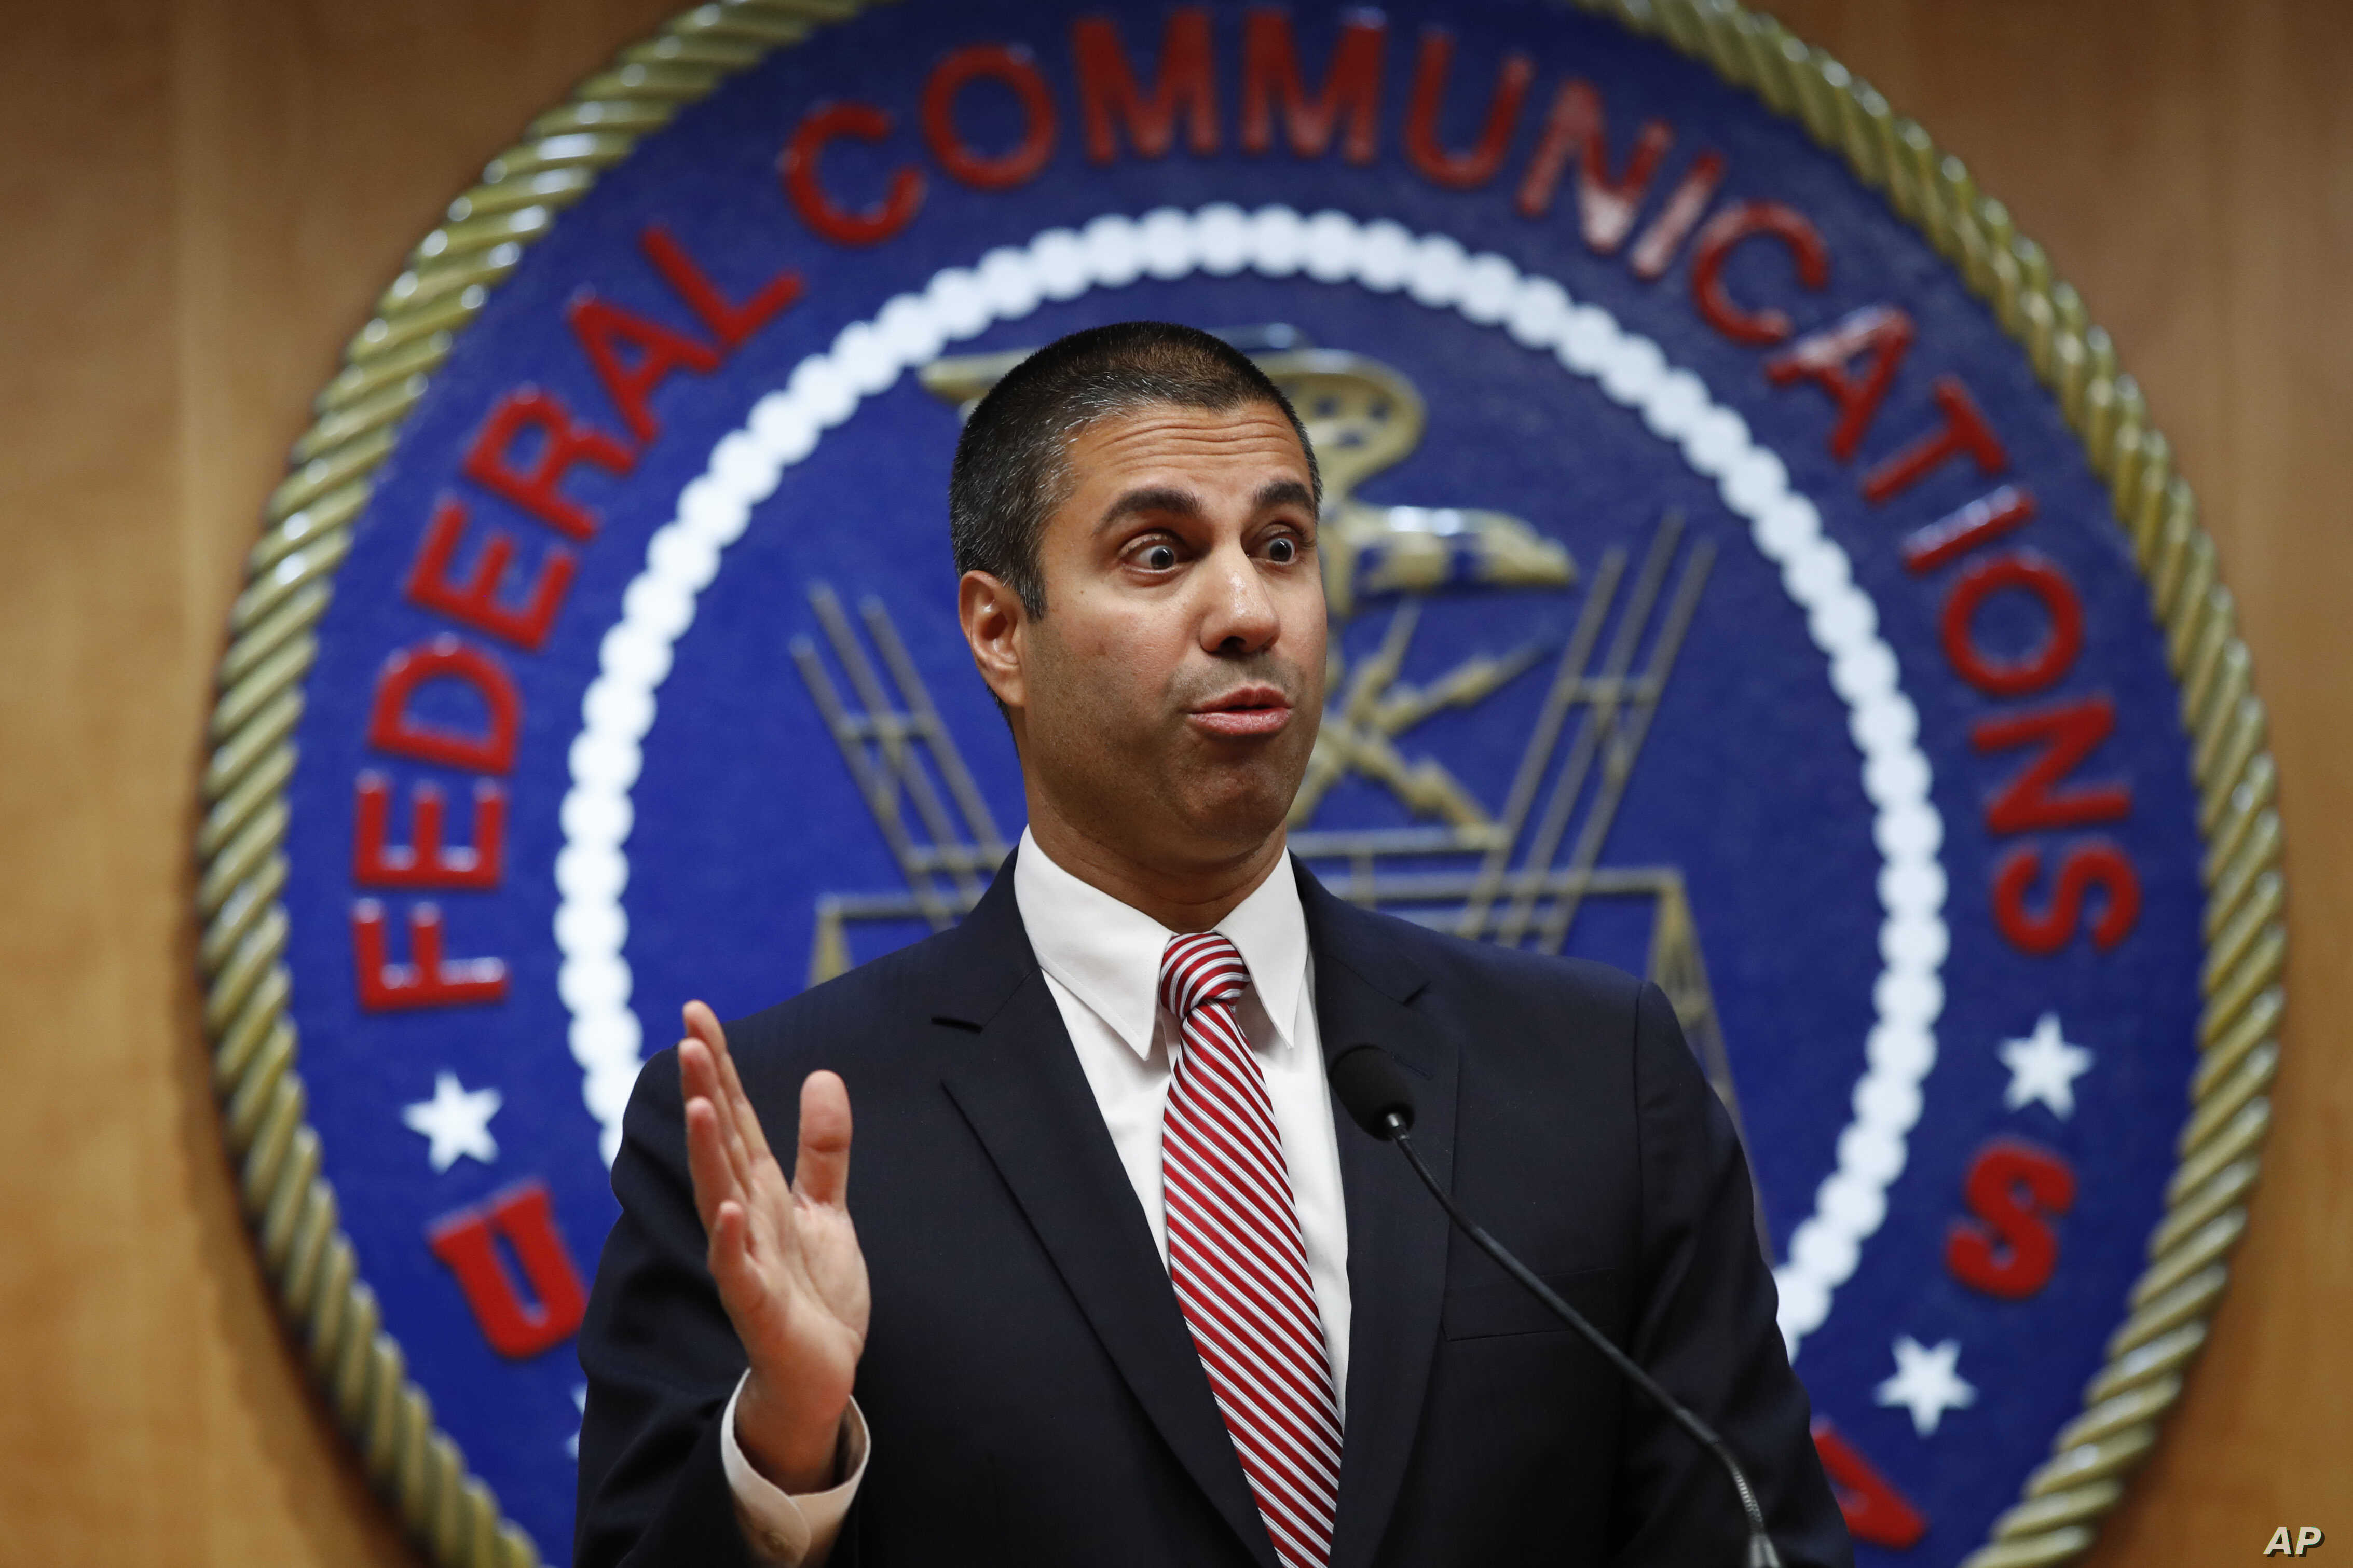 After a meeting voting to end net neutrality, Federal Communications Commission (FCC) Chairman Ajit Pai answers a question from a reporter, Dec. 14, 2017, in Washington.